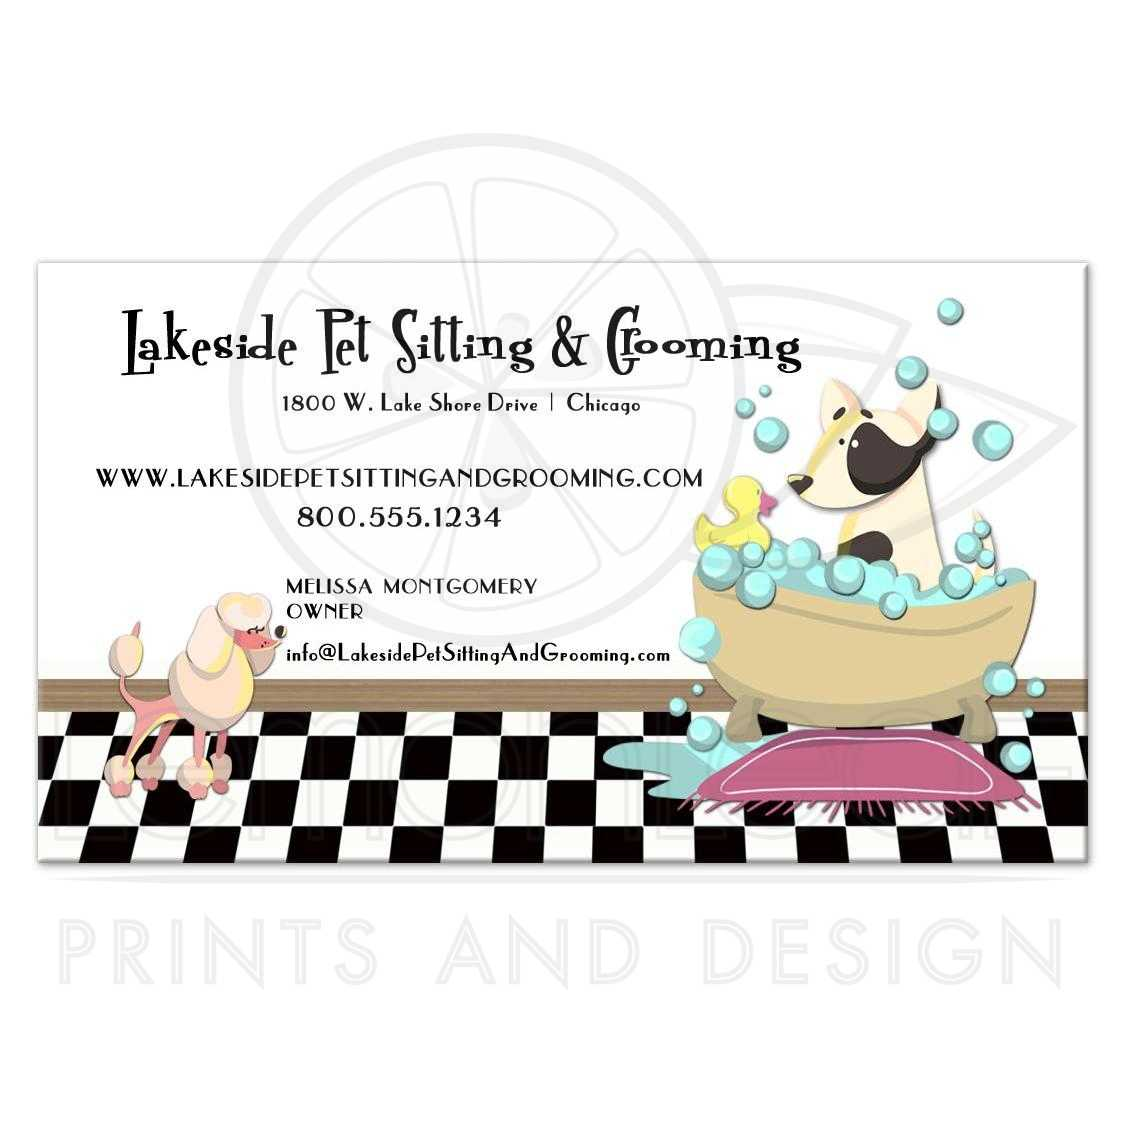 Poodle and Dog in Bathtub Grooming and Pet Sitting Business Card